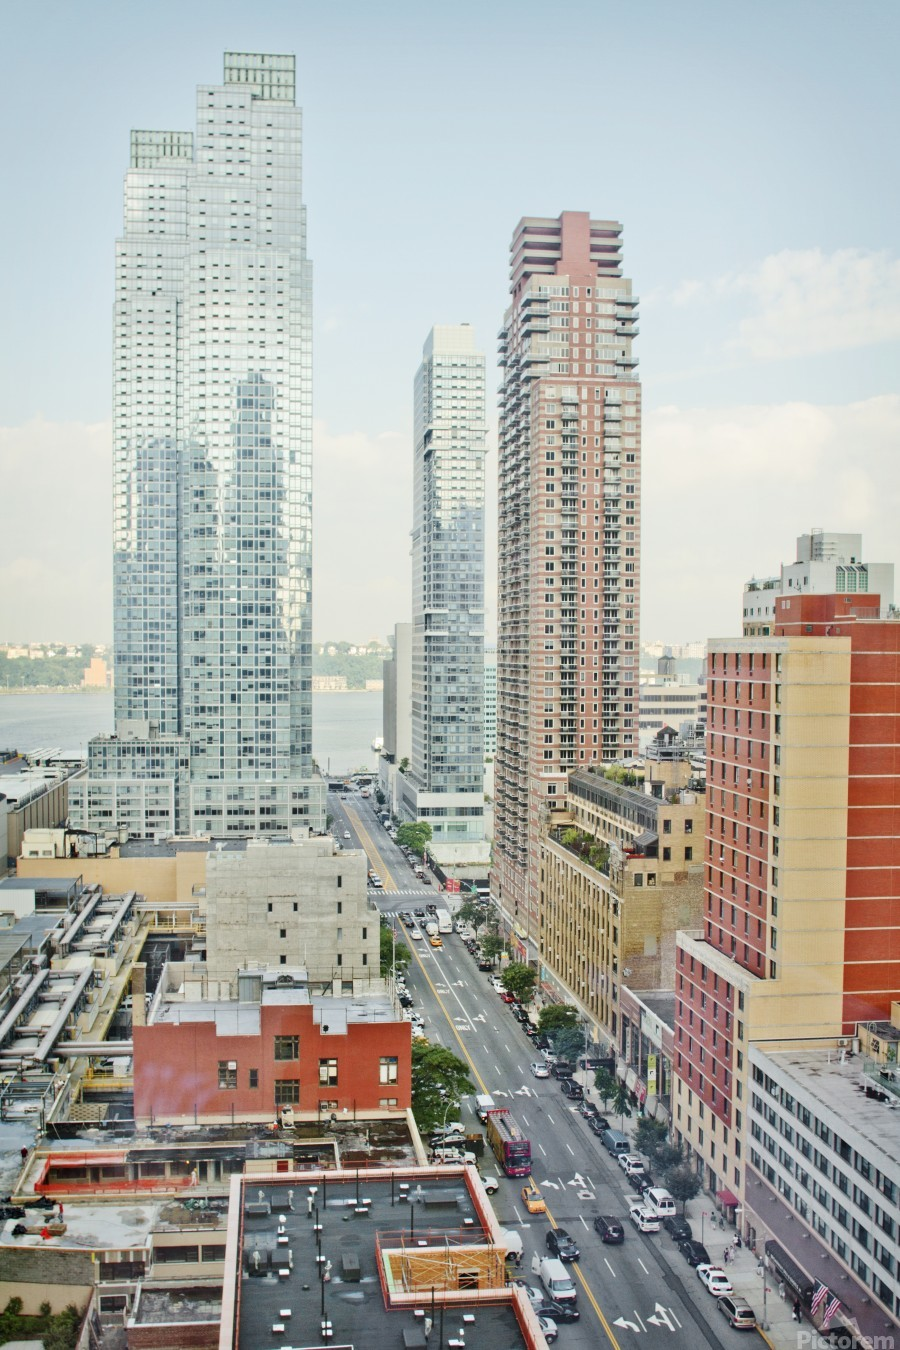 Architectural image of Hells kitchen Manhatten New york USA 2011  Print